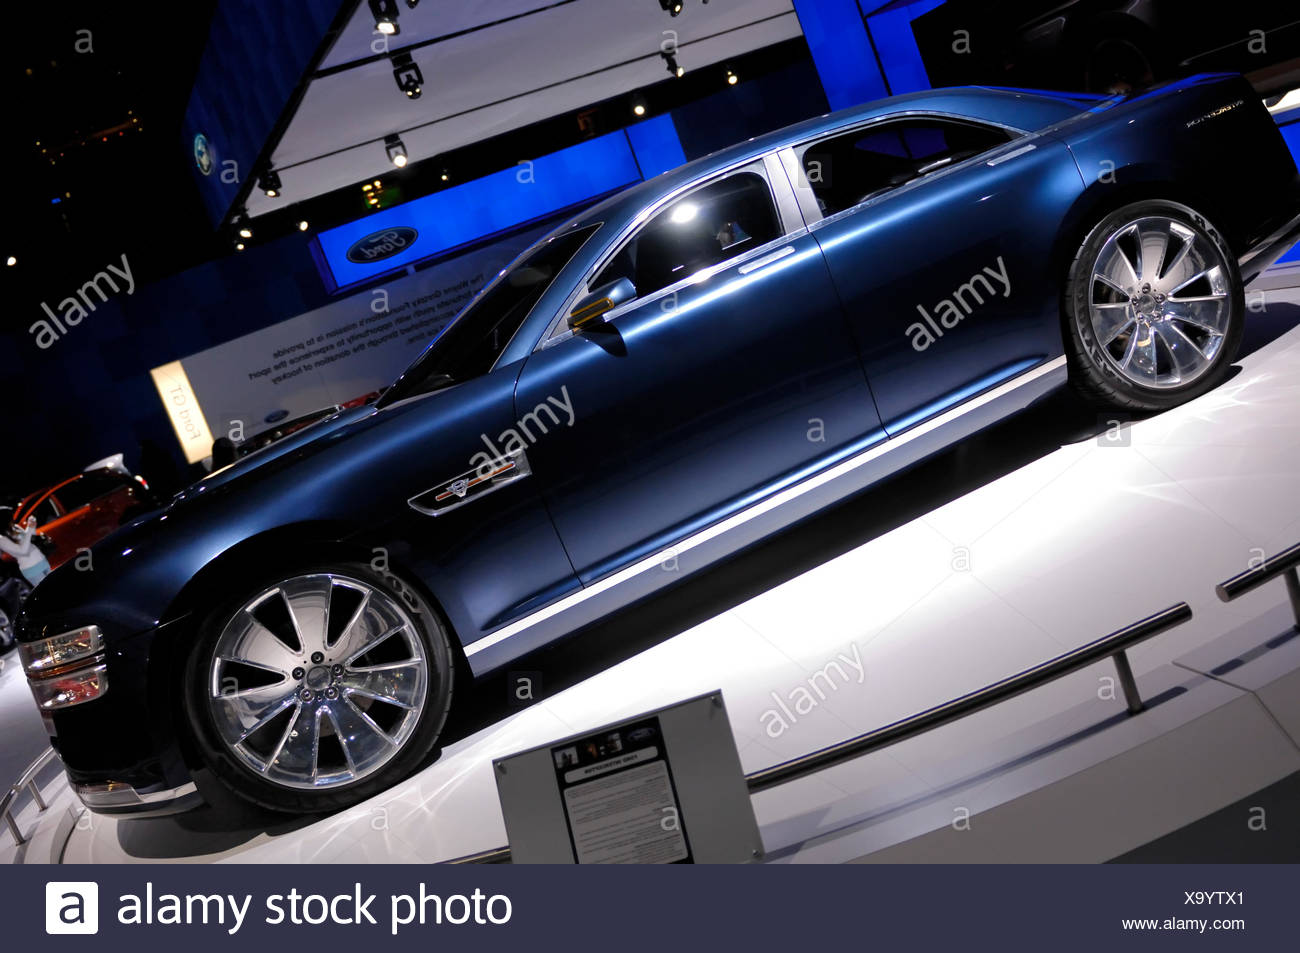 Ford Interceptor concept car retro-styled sedan, Toronto Auto Show 2008 - Stock Image